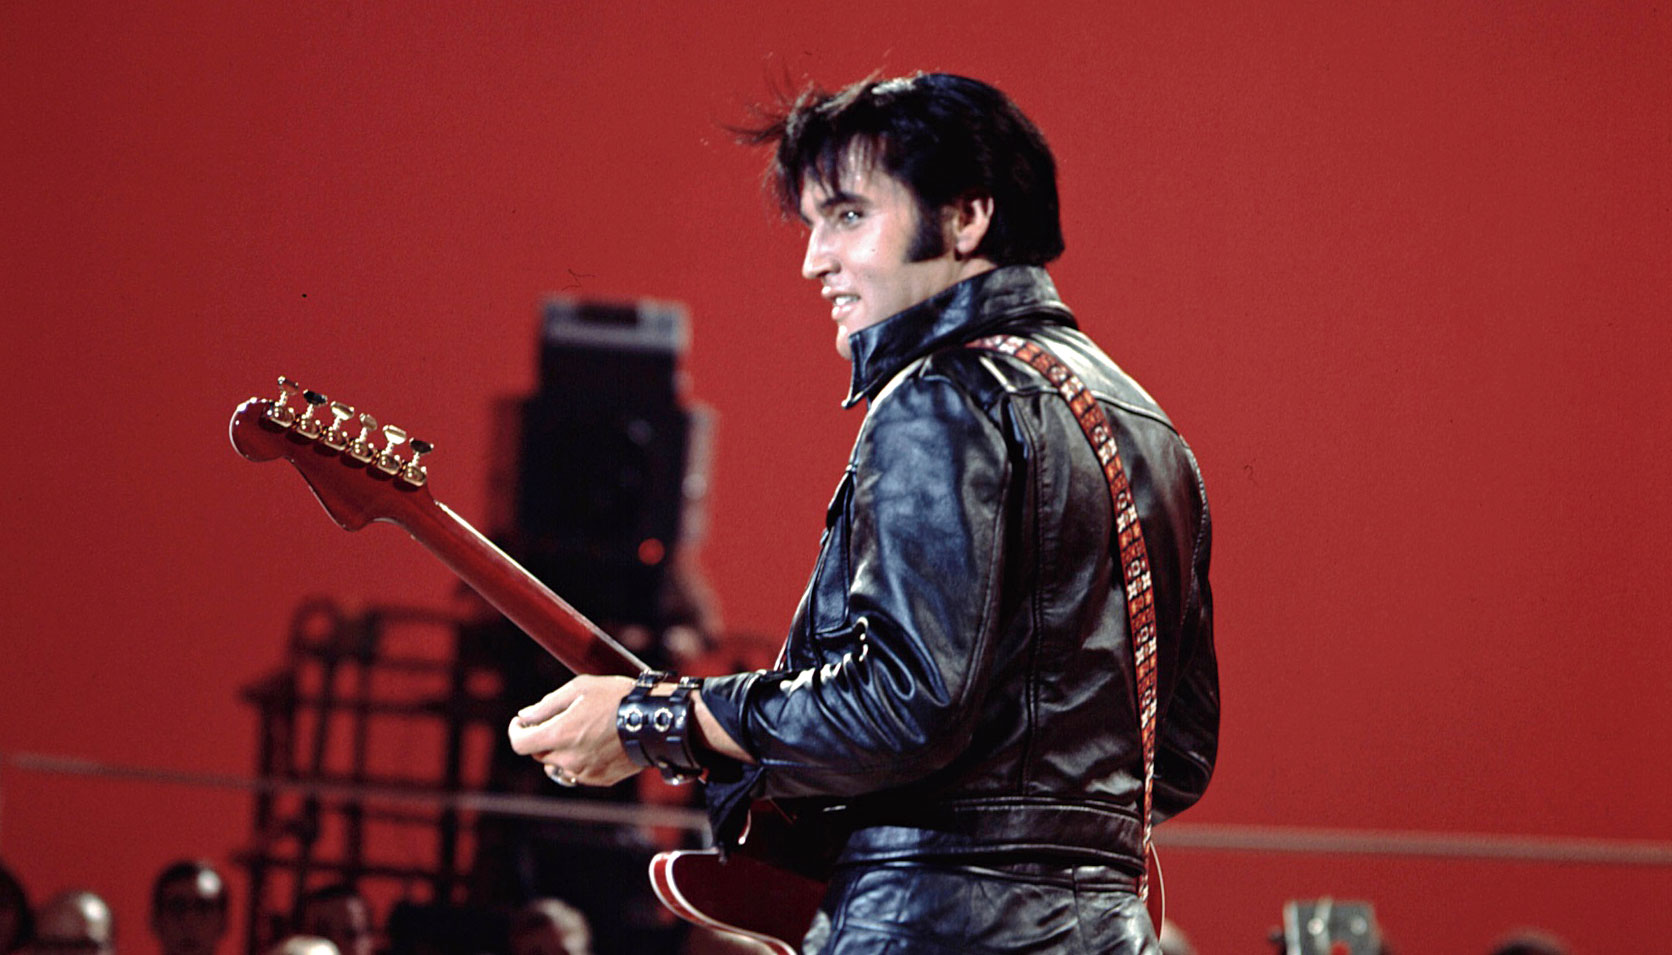 Elvis Presley at his iconic 1968 NBC Comeback Special.